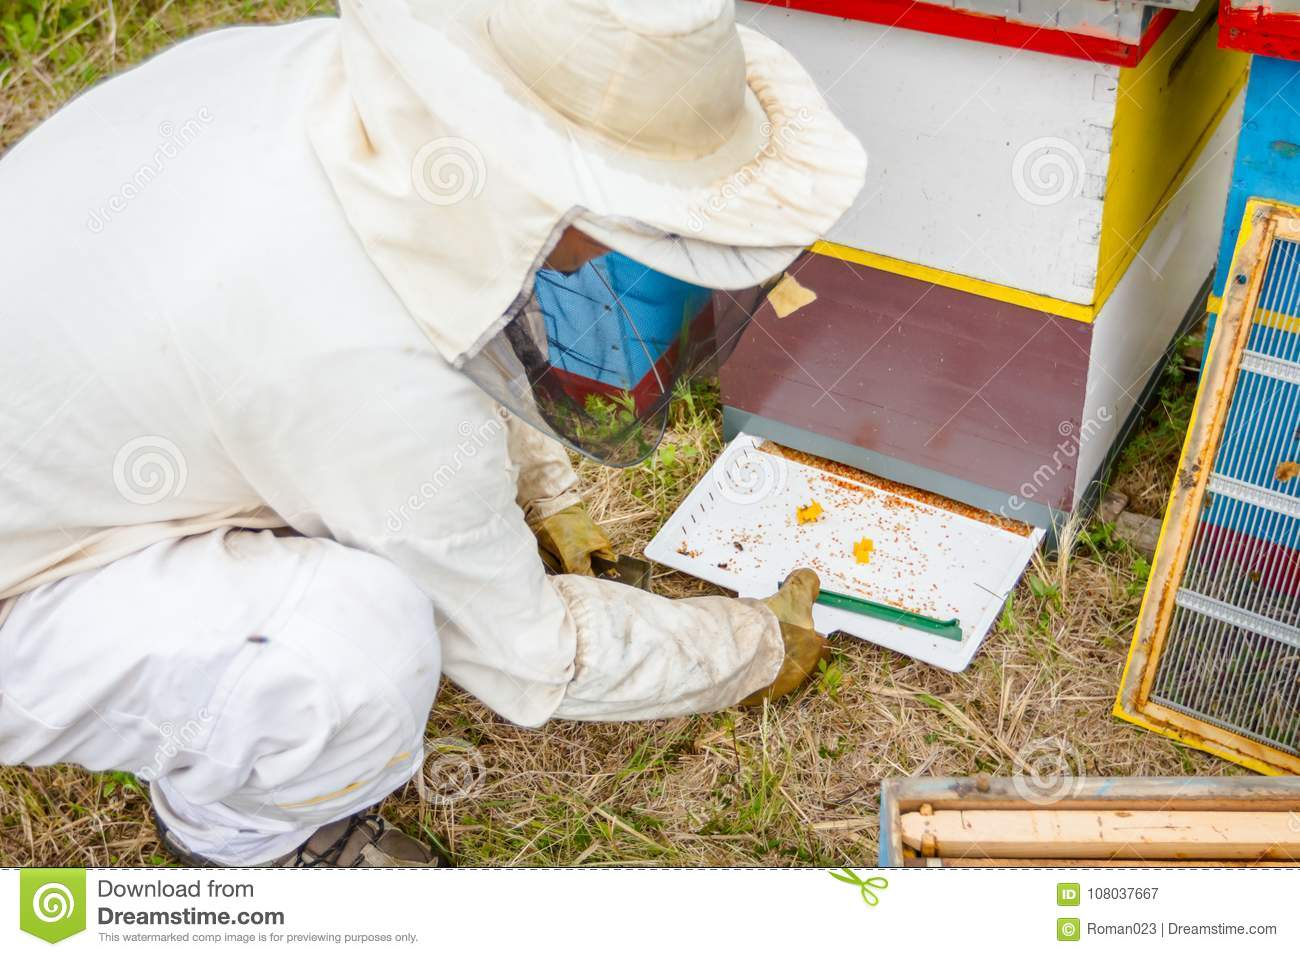 Beekeeper is checking collected colorful bee pollen on white plastic casserole